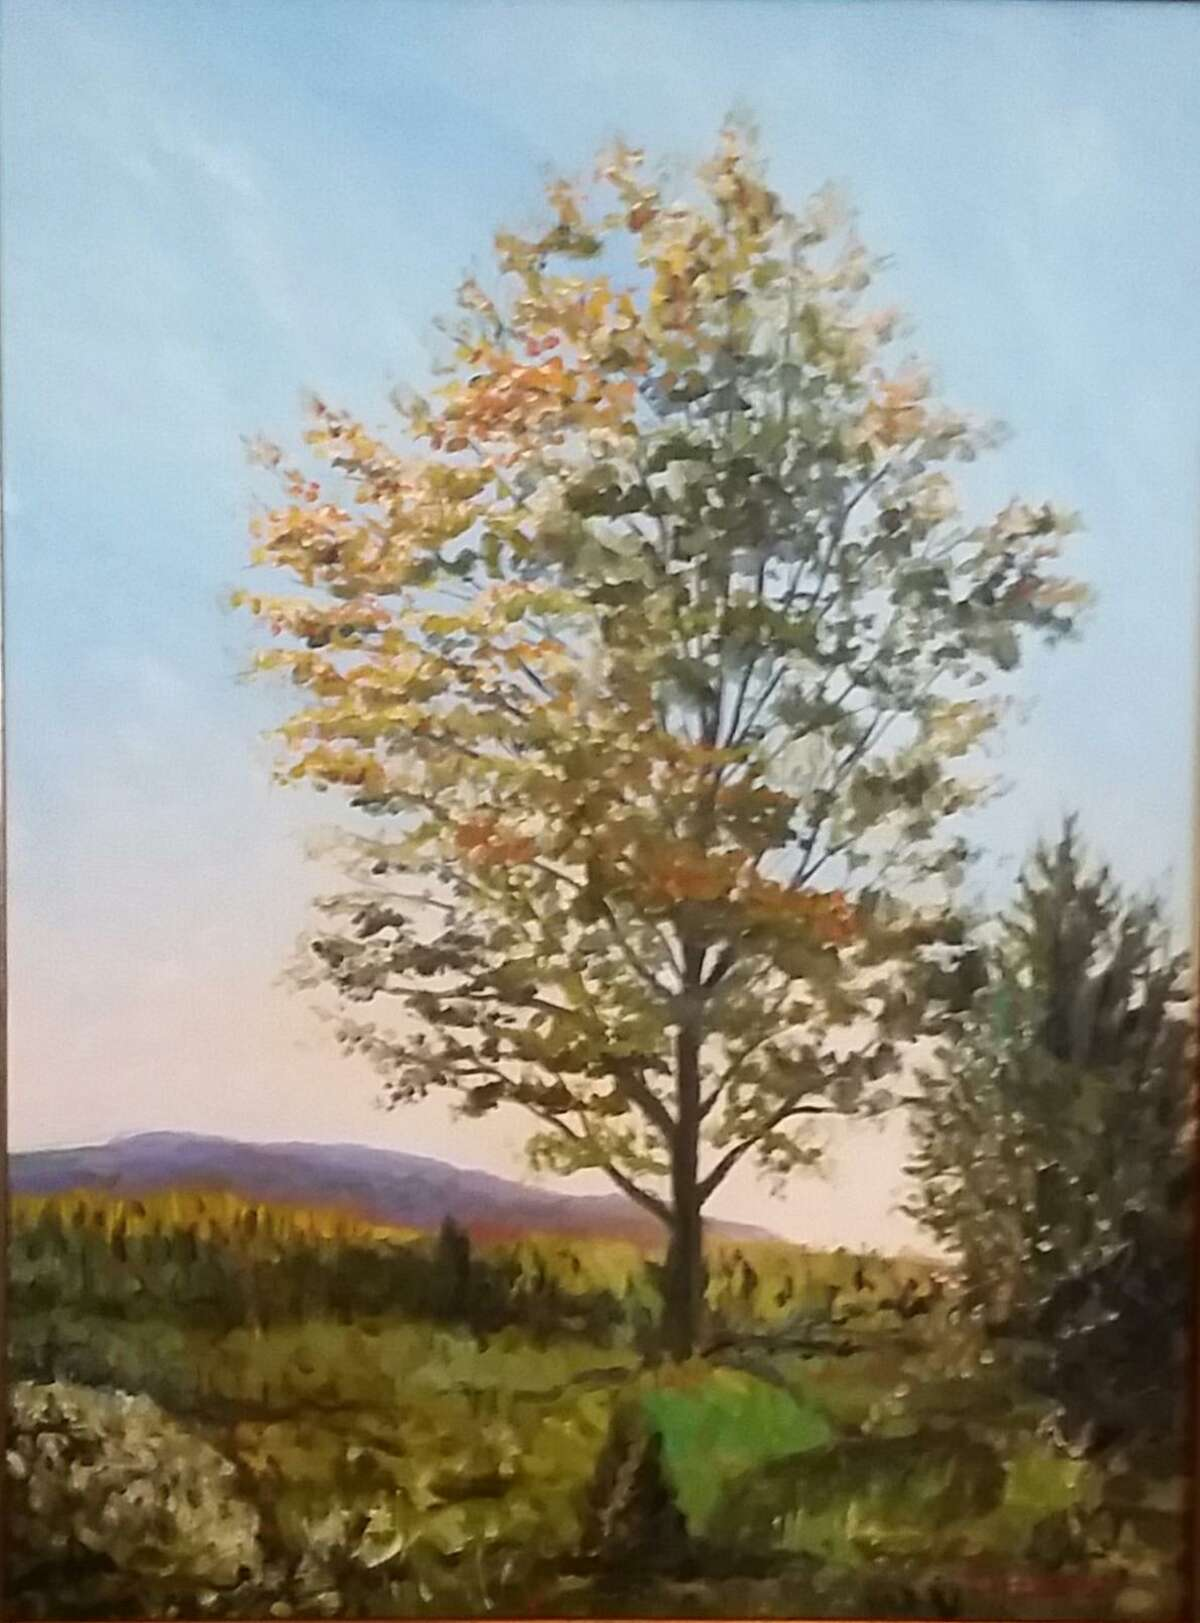 The Acton Public Library, 60 Old Boston Post Road Old Saybrook, is hosting a show by guest artist Daniel Dahlstrom of Chester.